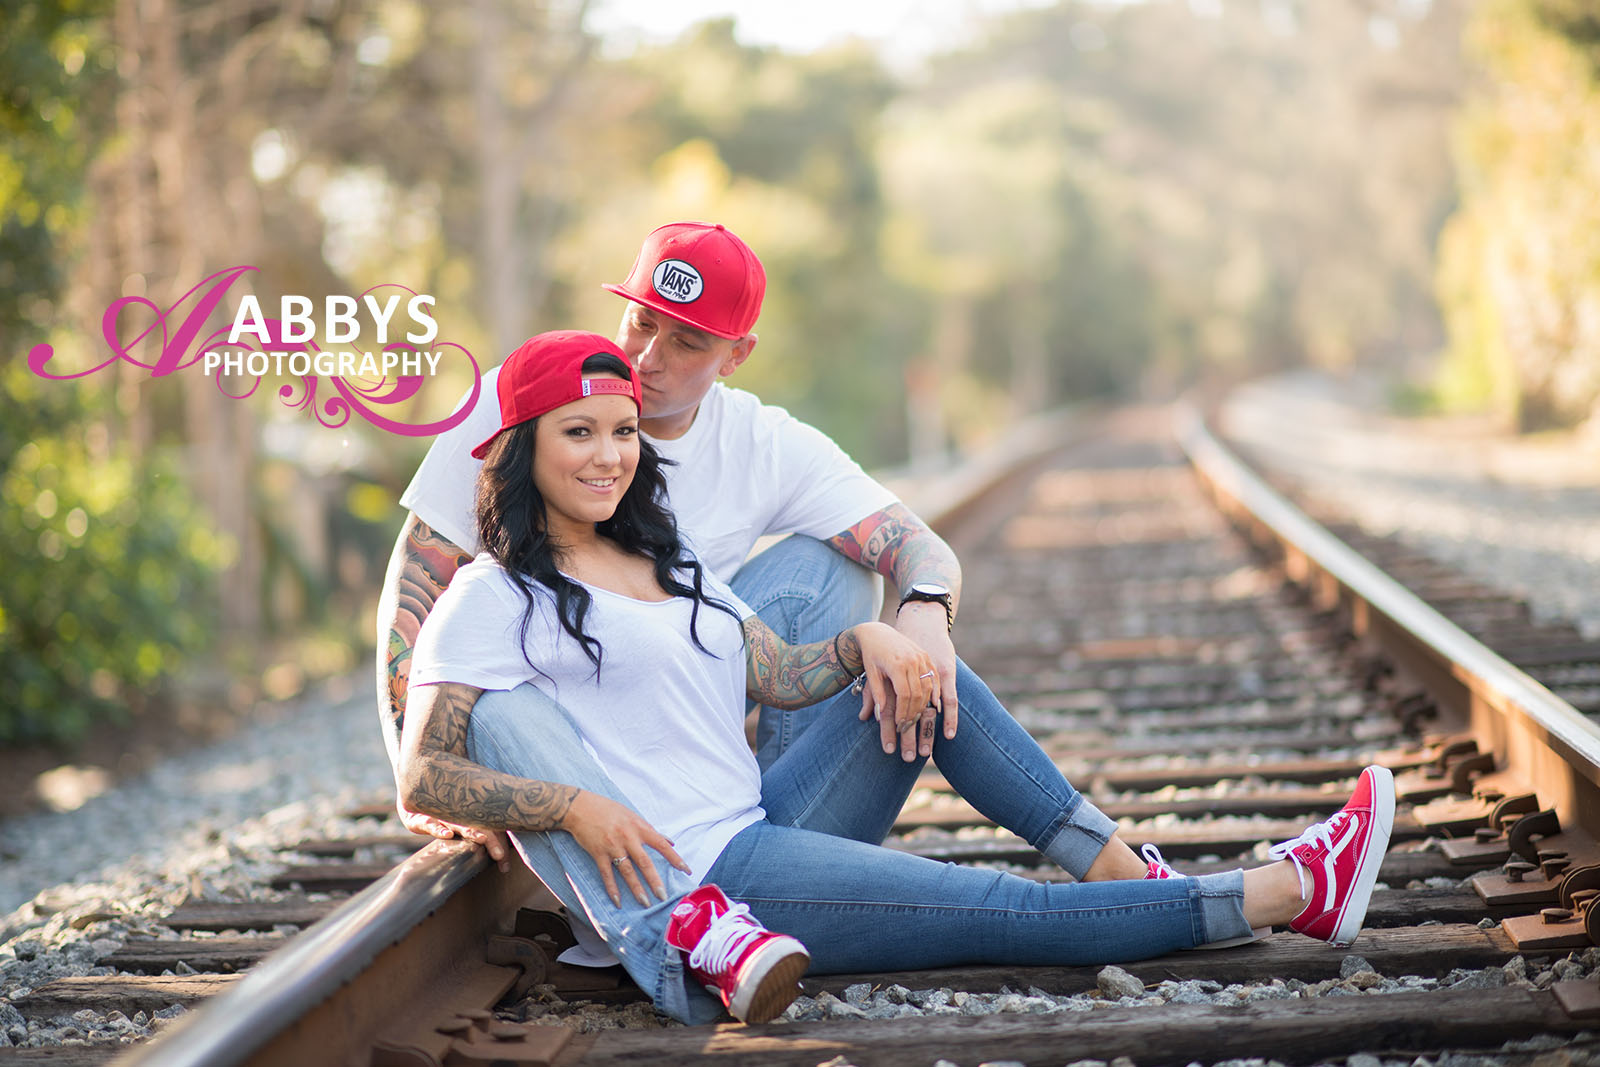 Engagement photography can be shot on either side of the tracks.